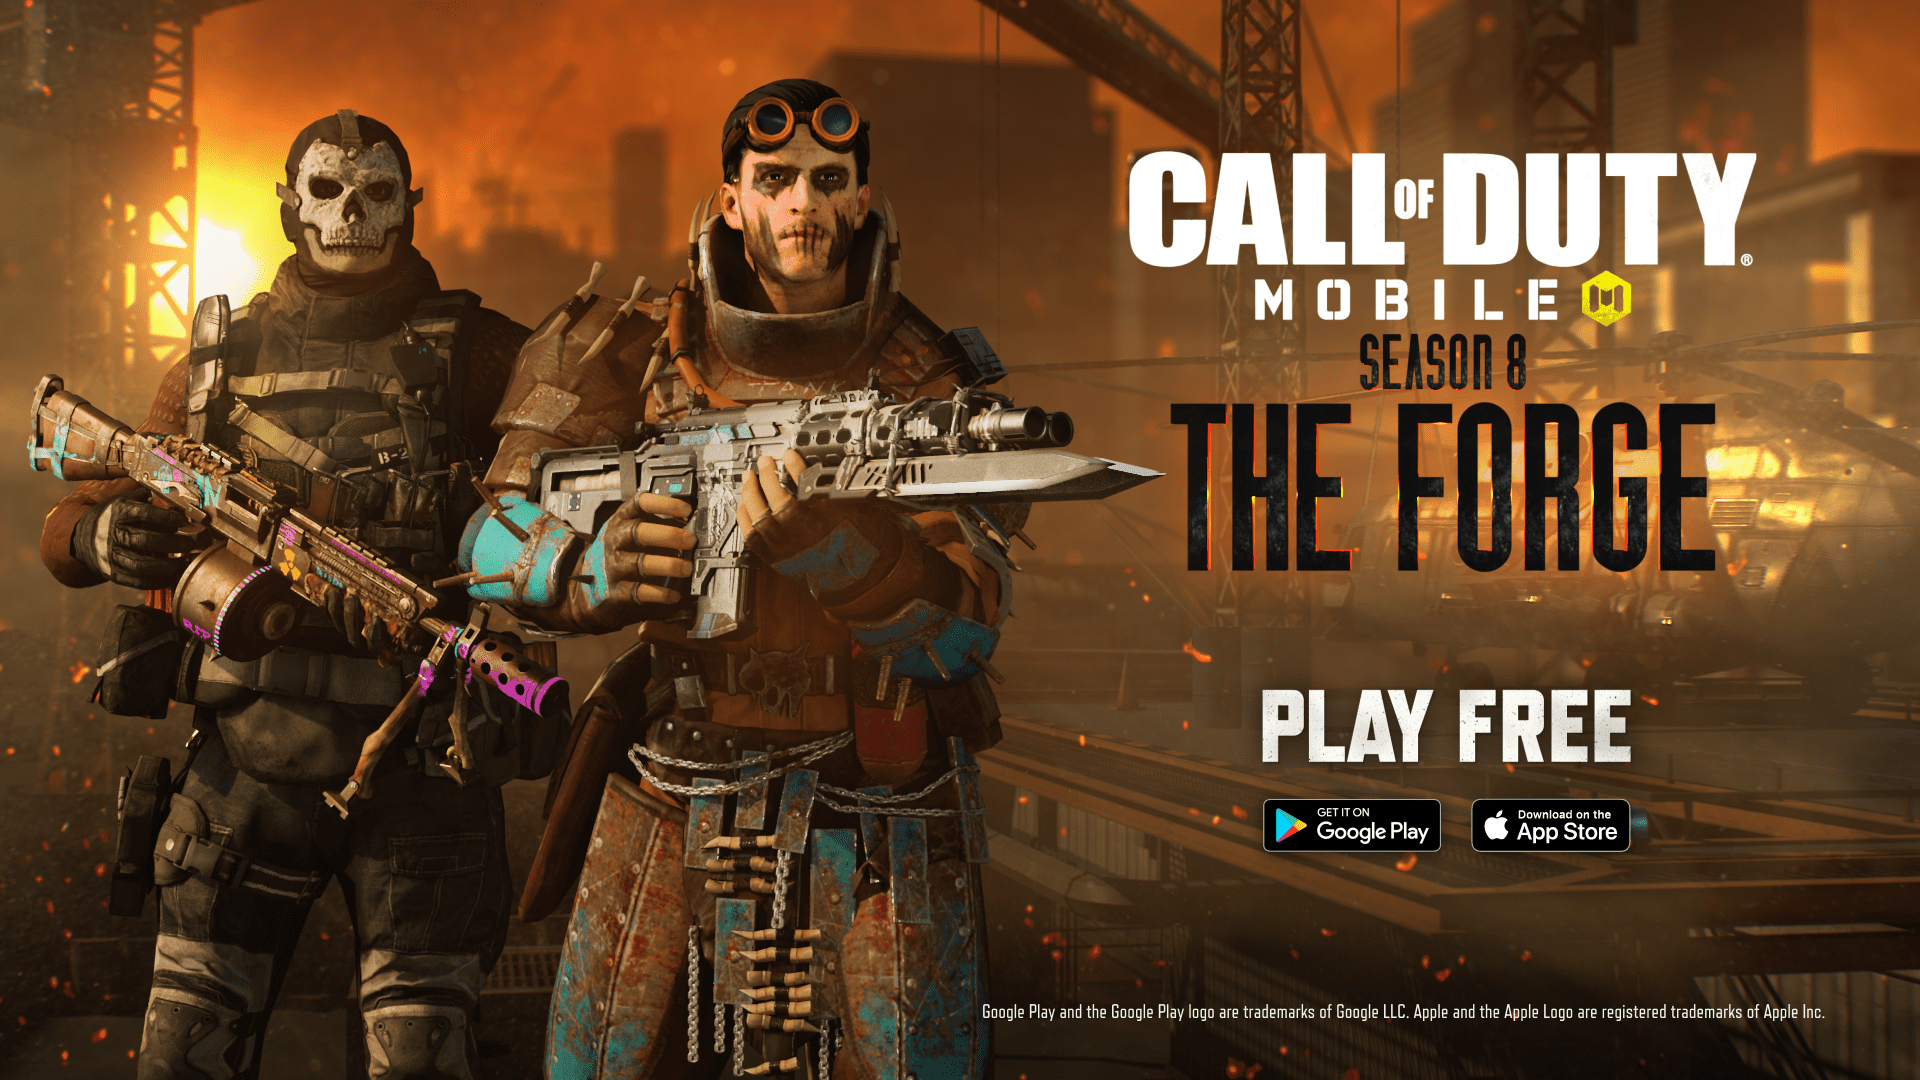 Call of Duty: Mobile Season 8: The Forge Now Live